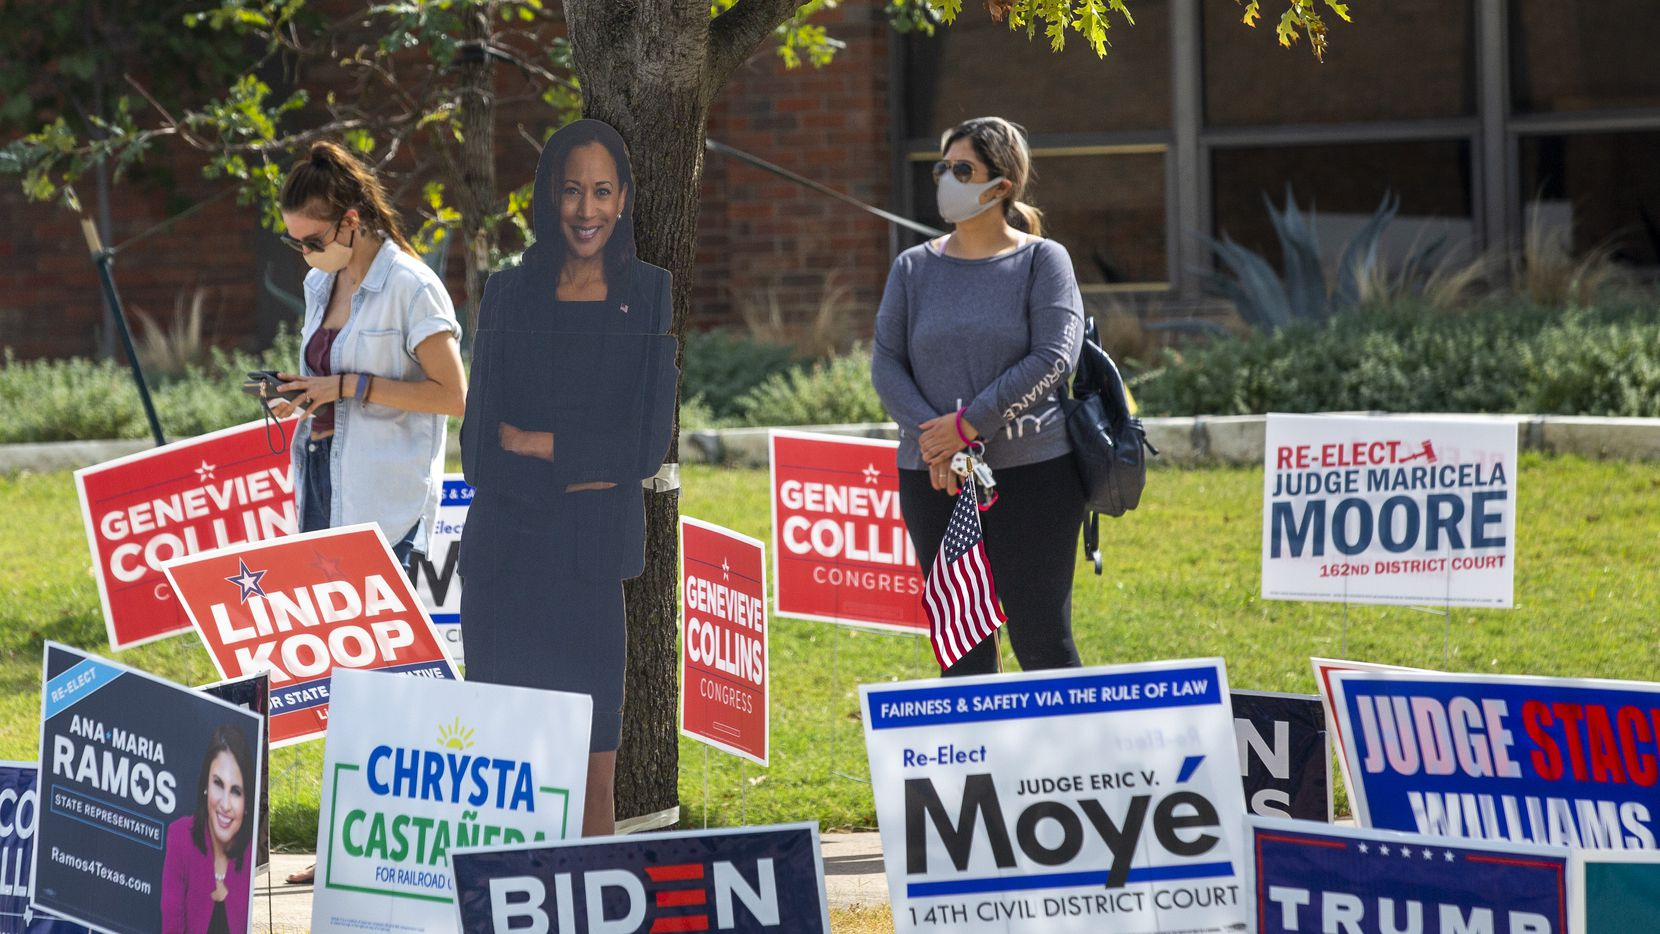 Voters line up to cast their ballot during the early voting period for the general U.S. election at Fretz Park Public Library in Dallas on Tuesday, Oct. 20, 2020. The FBI and local elections officials say early voting is far uneventful, but authorities are preparing for the worst on Election Day.